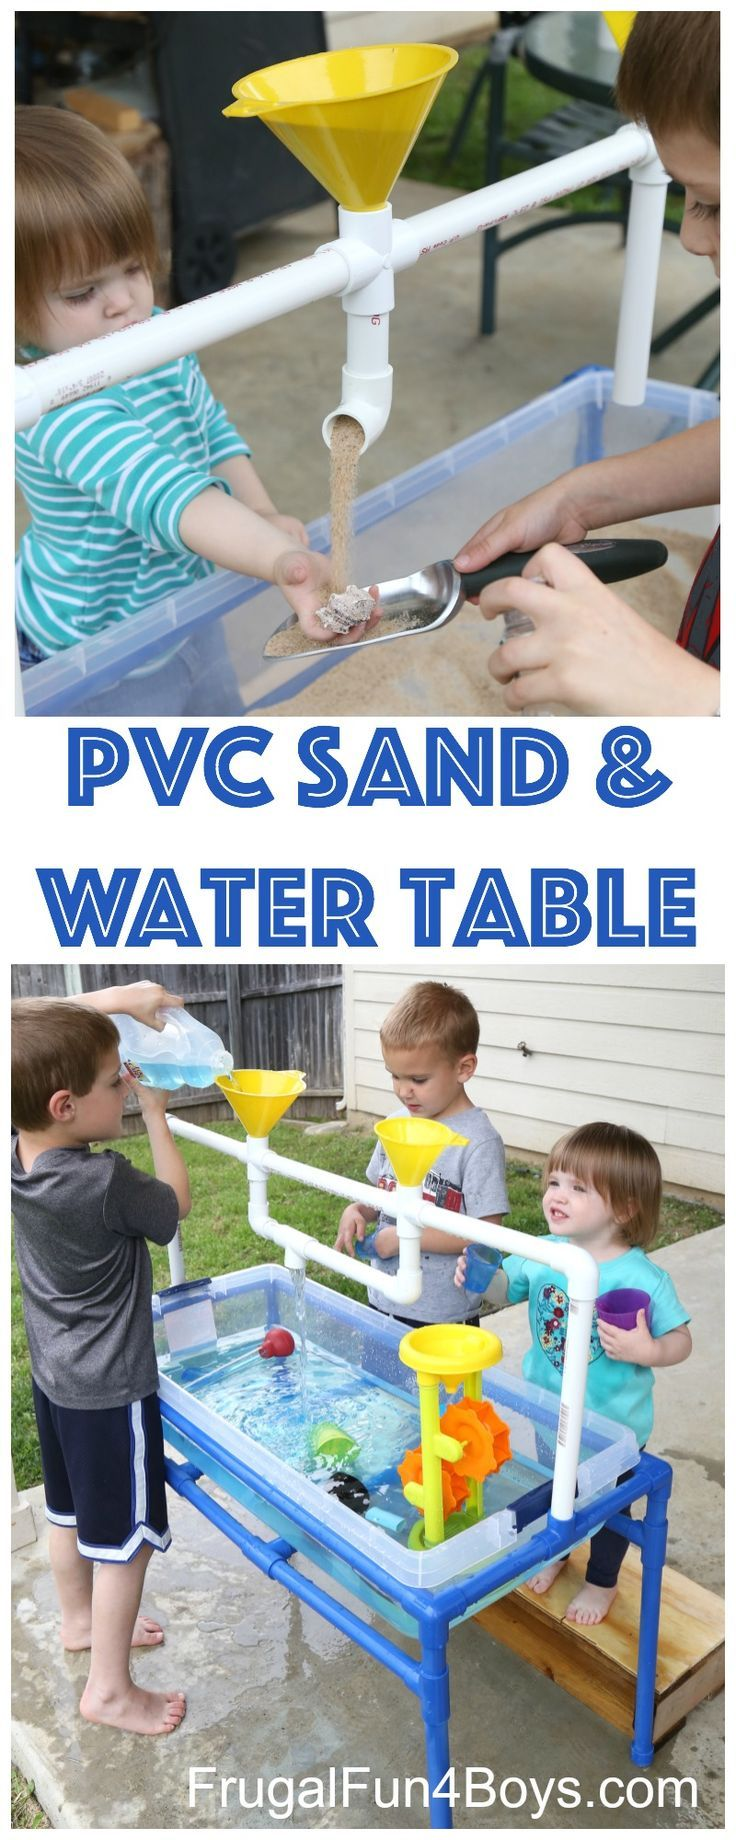 Use PVC pipe to make a sand and water table for kids! My 2, 4, and 6 year olds have been loving this sensory play table. I am loving the fact that you can change out the tubs and do either water or sand (or something else!) but not have both out at the s